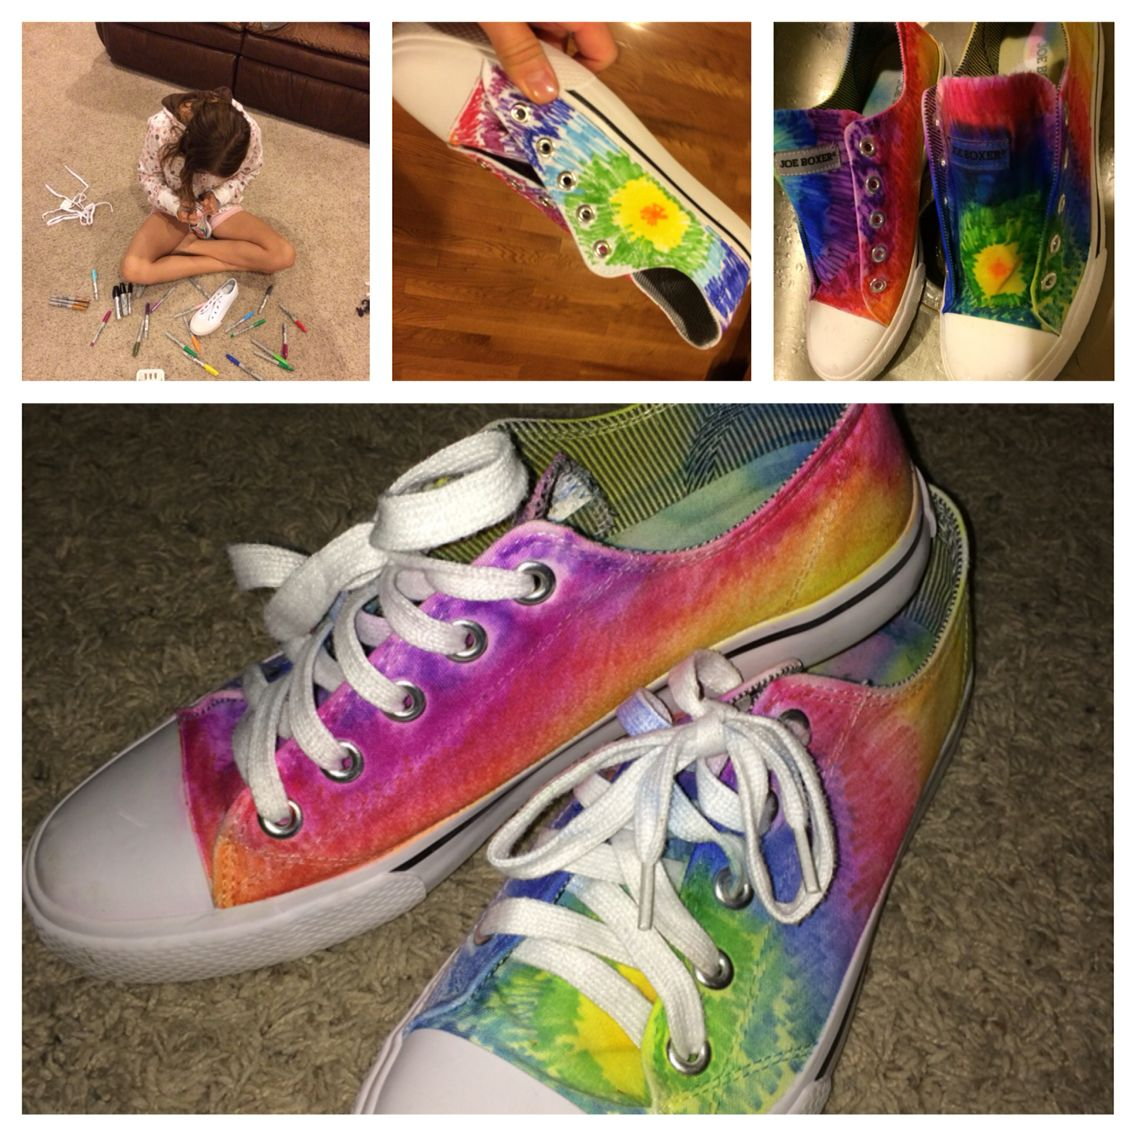 white canvas shoes colored with sharpies. then poor rubbing